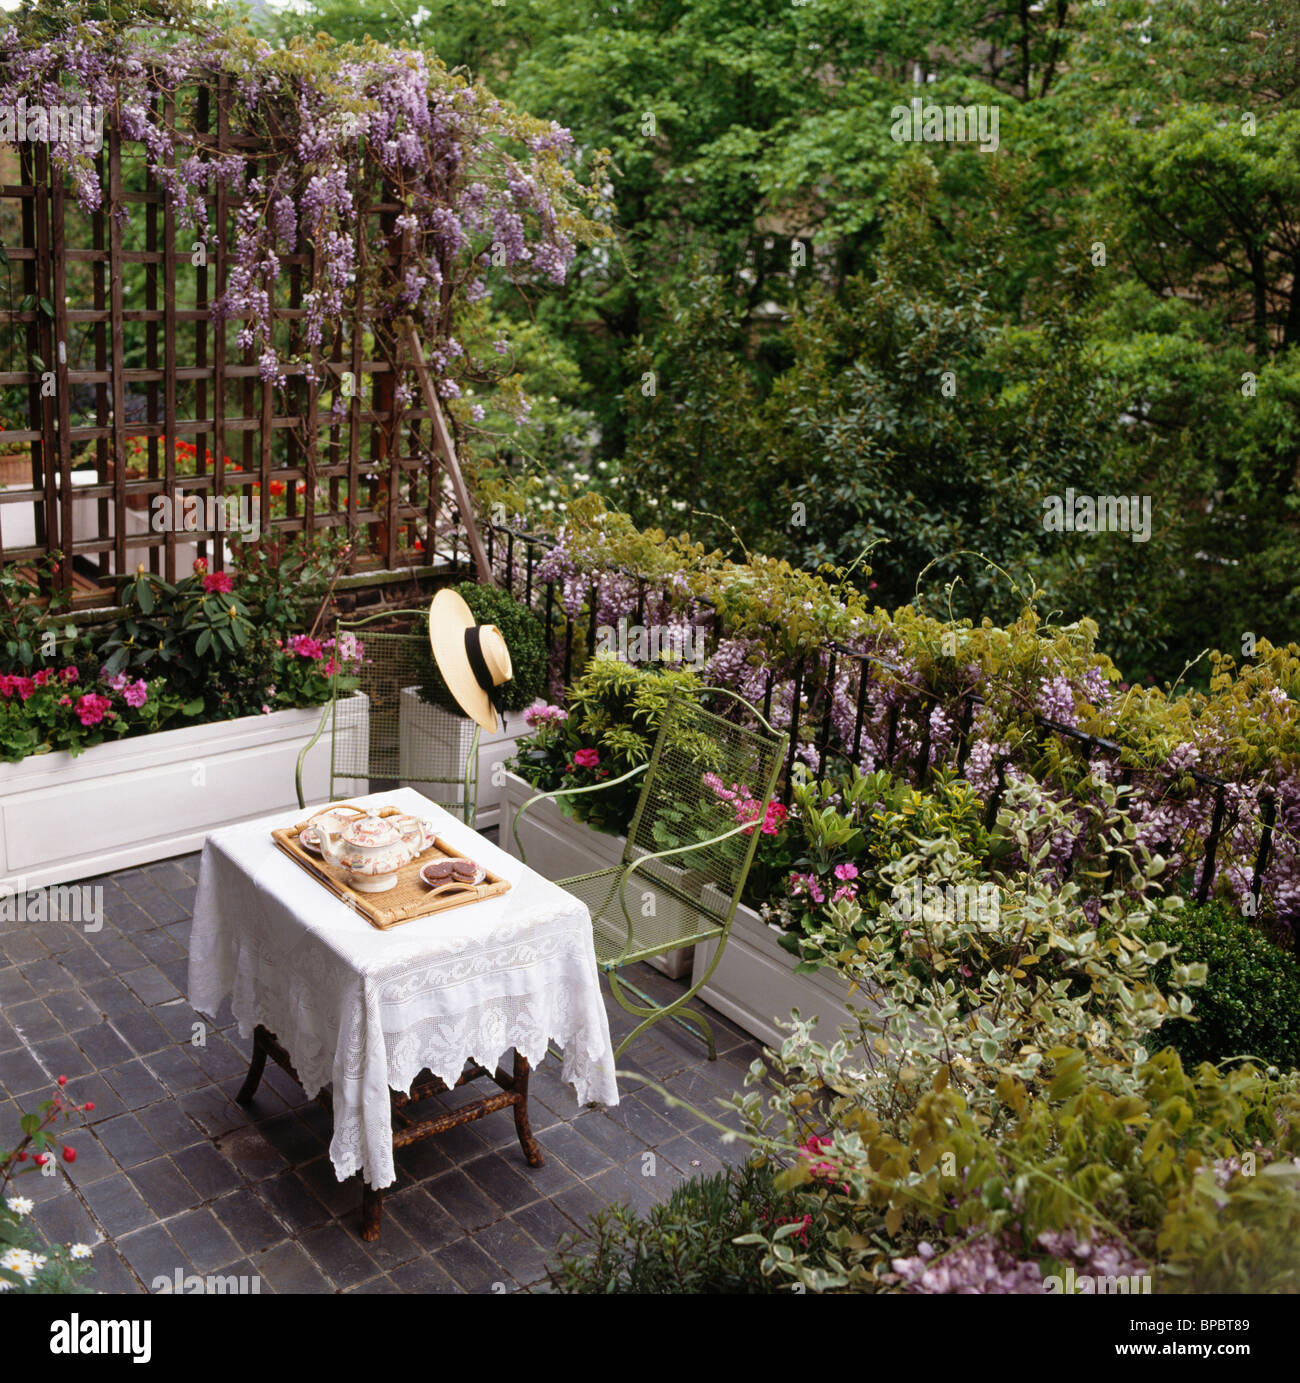 small balcony table looking down on small paved balcony with wisteria on trellis and railings above balcony furnished small foldable